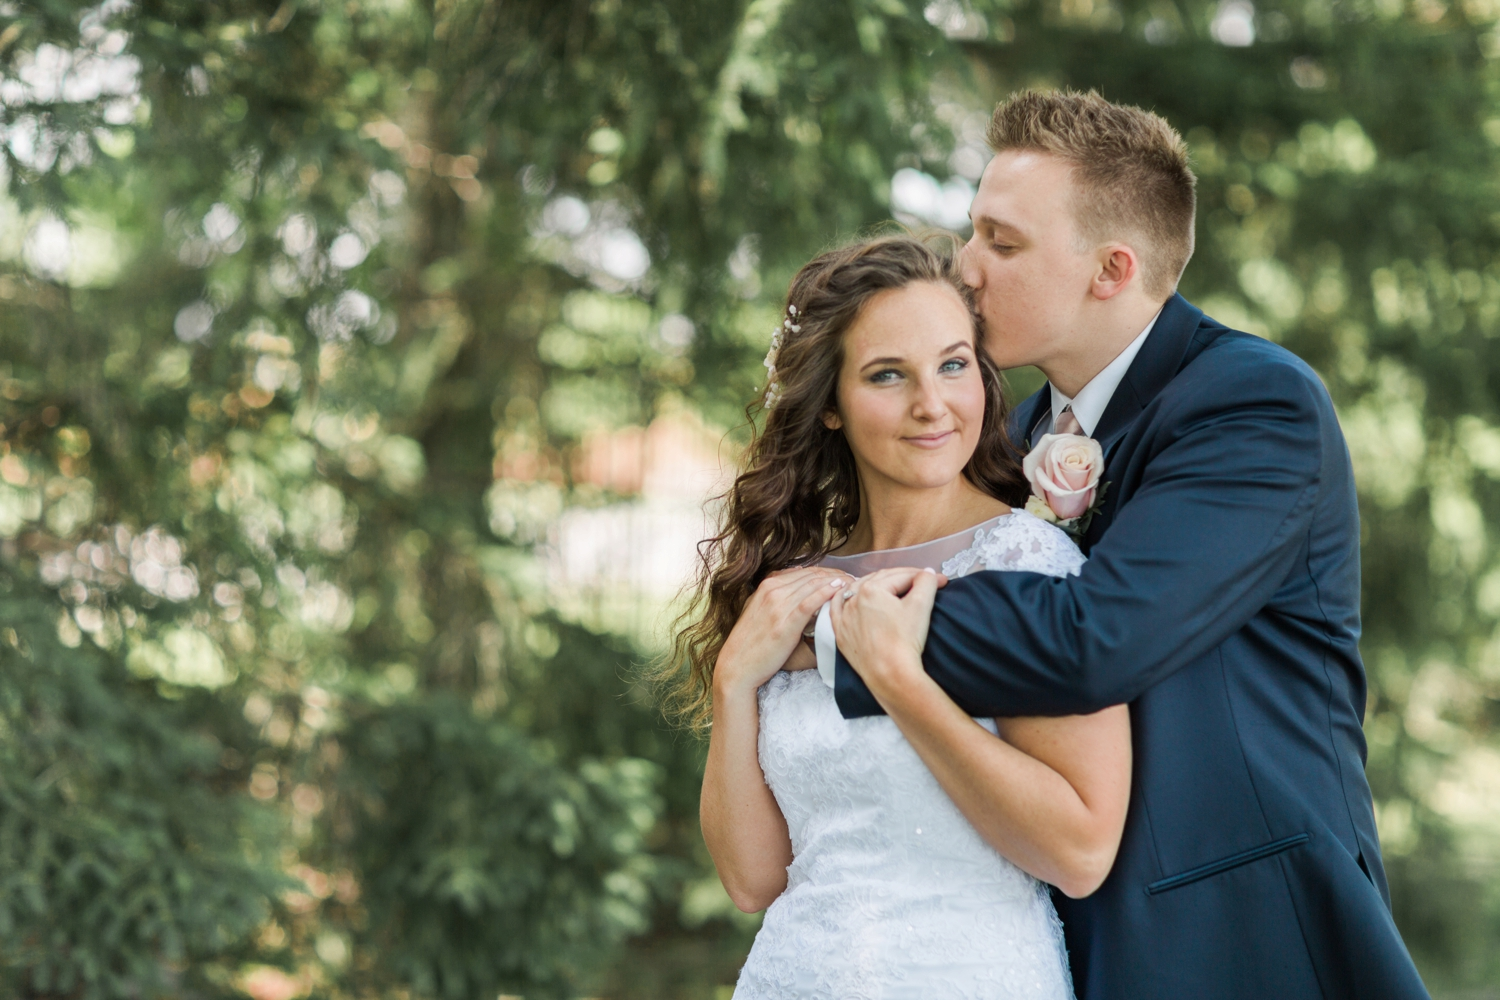 Community_Life_Center_Indianapolis_Indiana_Wedding_Photographer_Chloe_Luka_Photography_6906.jpg